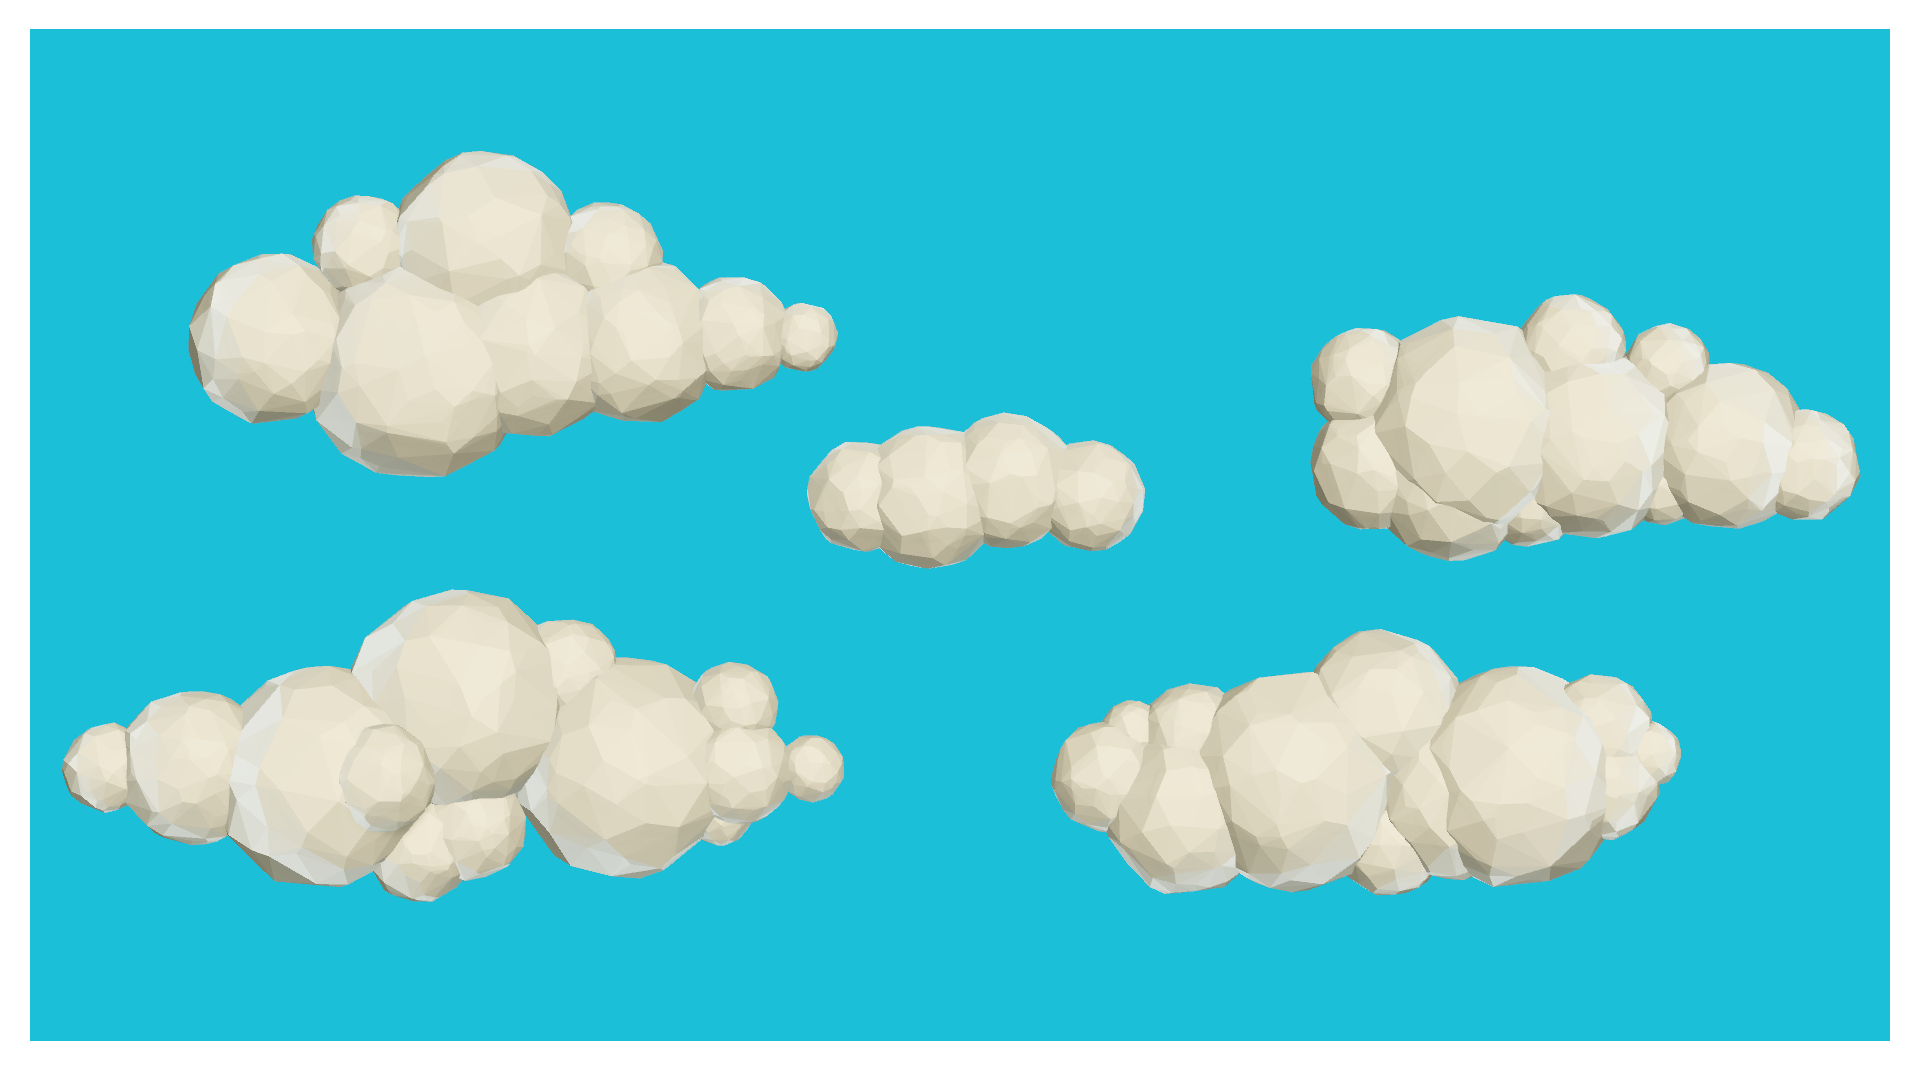 Low Poly Cloud Generator